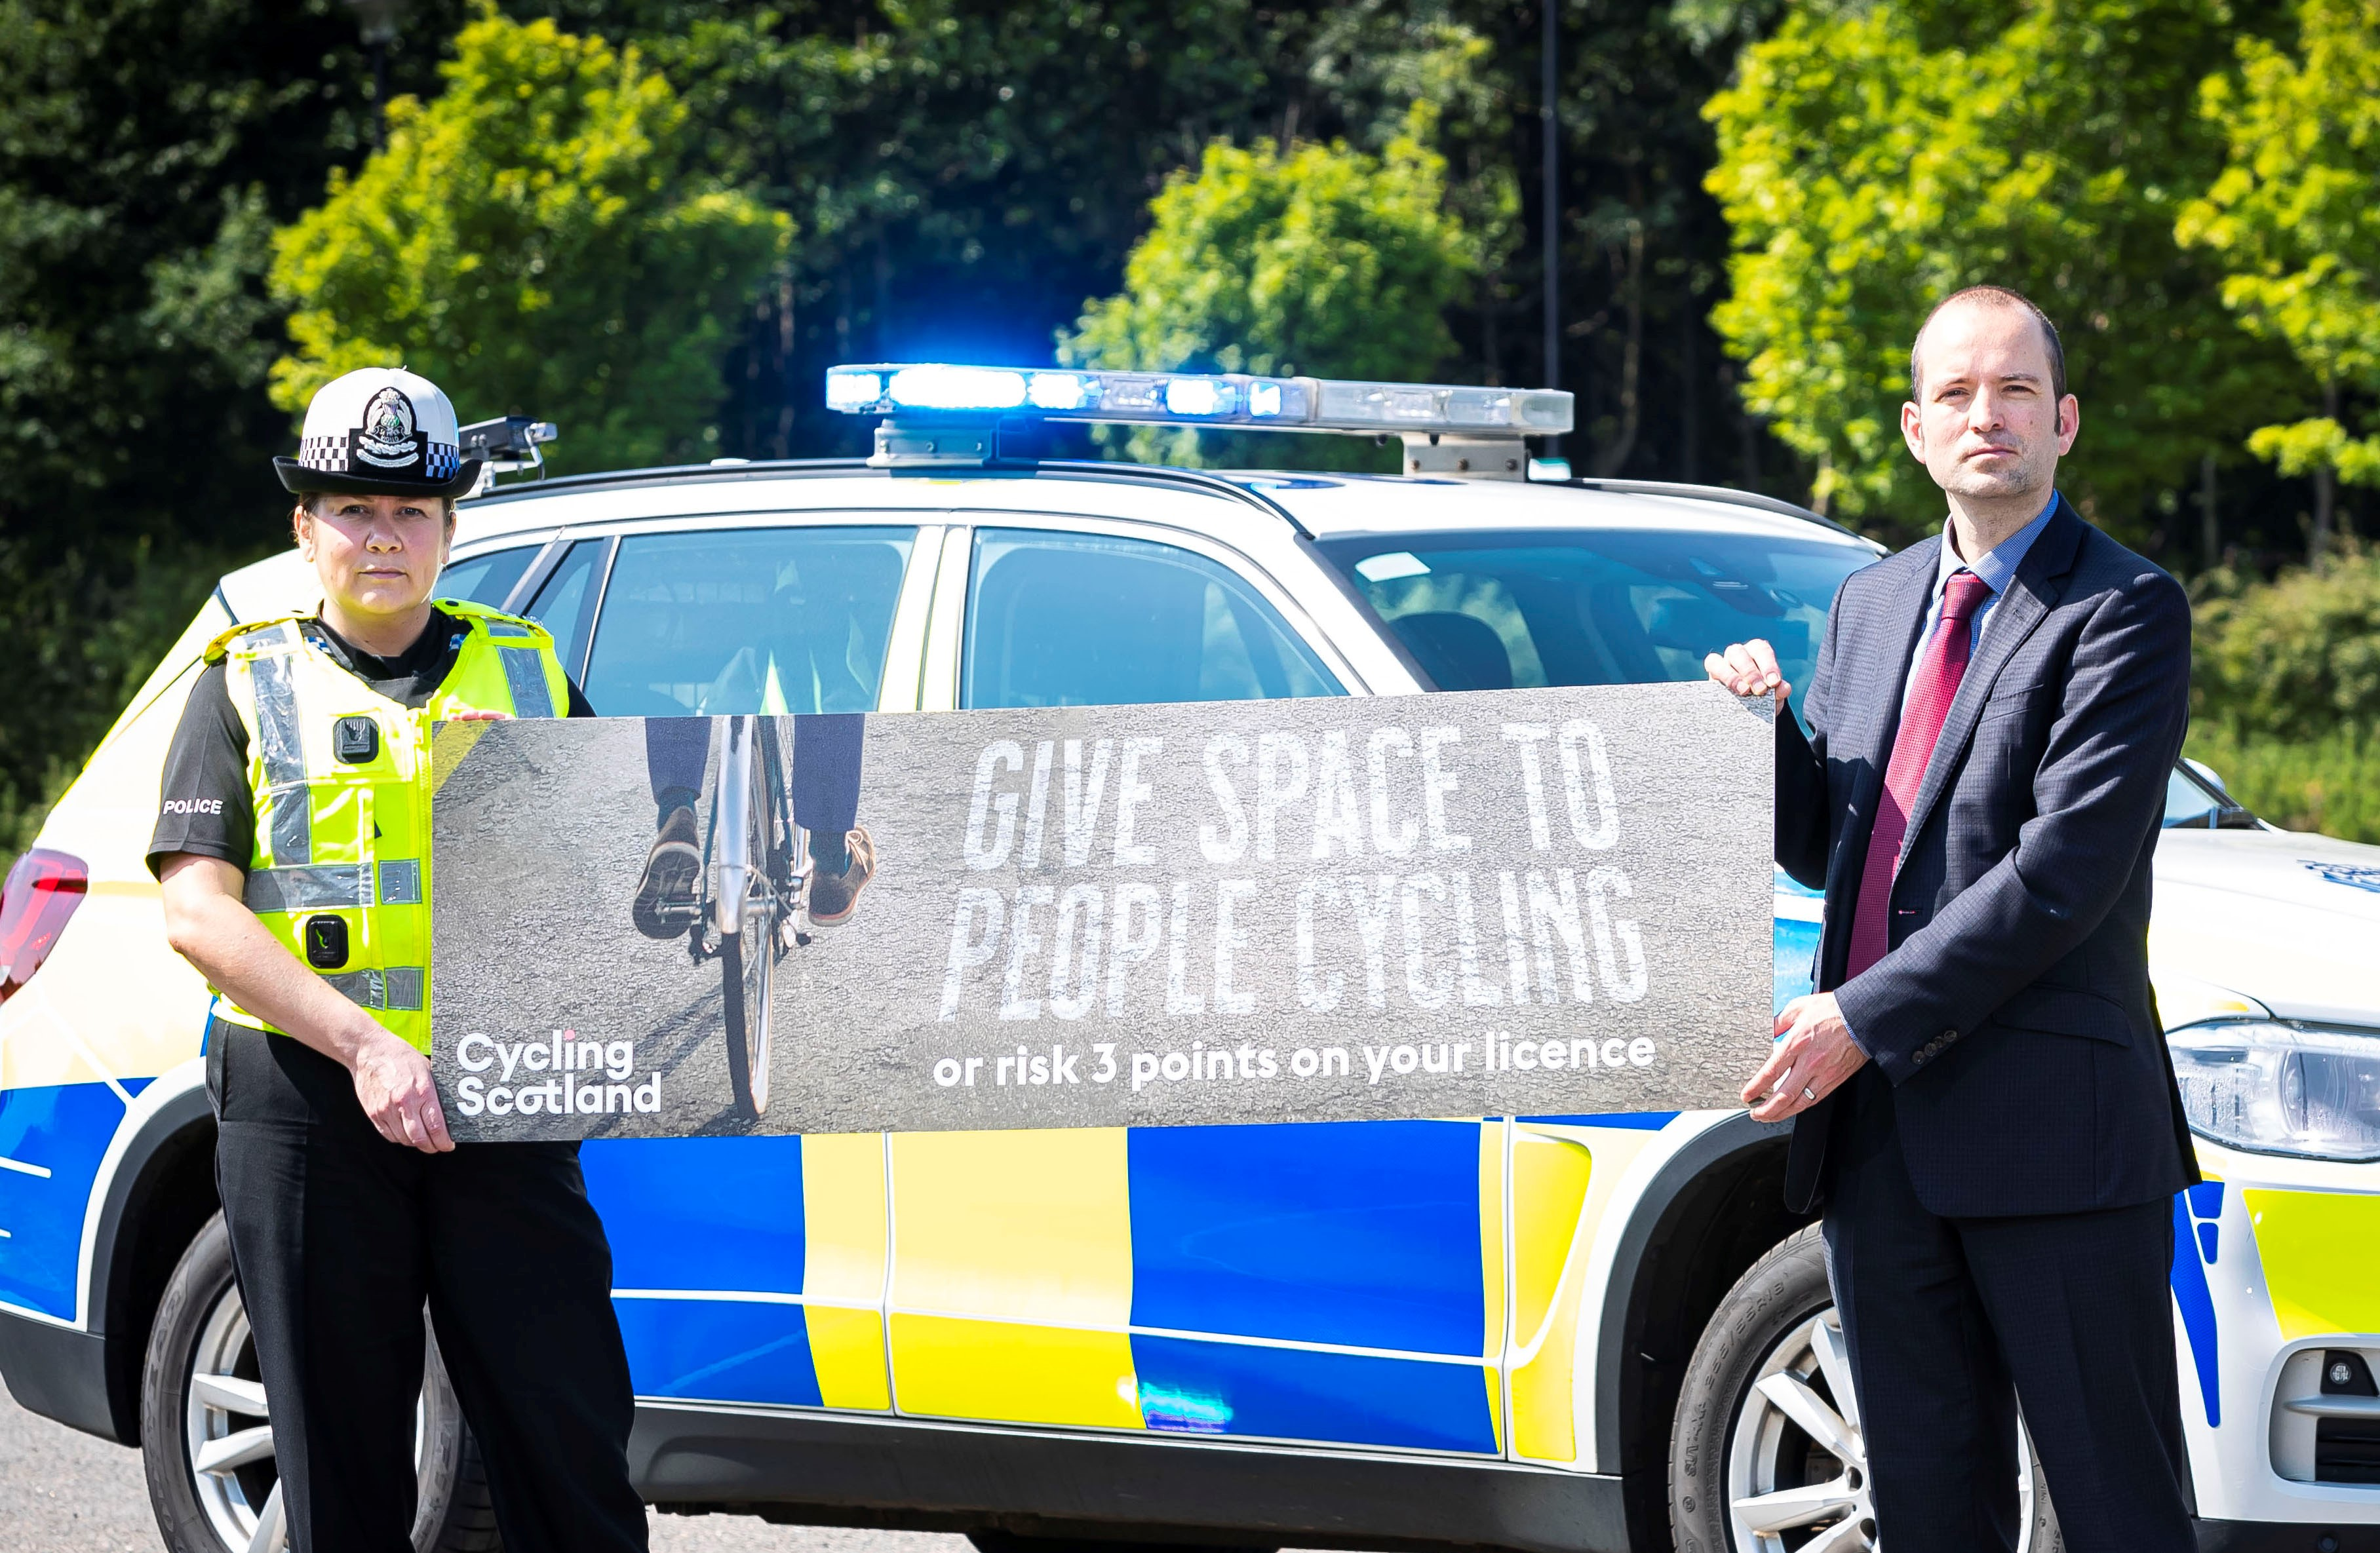 Give Cycle Space 2020 - Louise Blakelock Head of Road Policing and Keith Irving Chief Executive Cycling Scotland